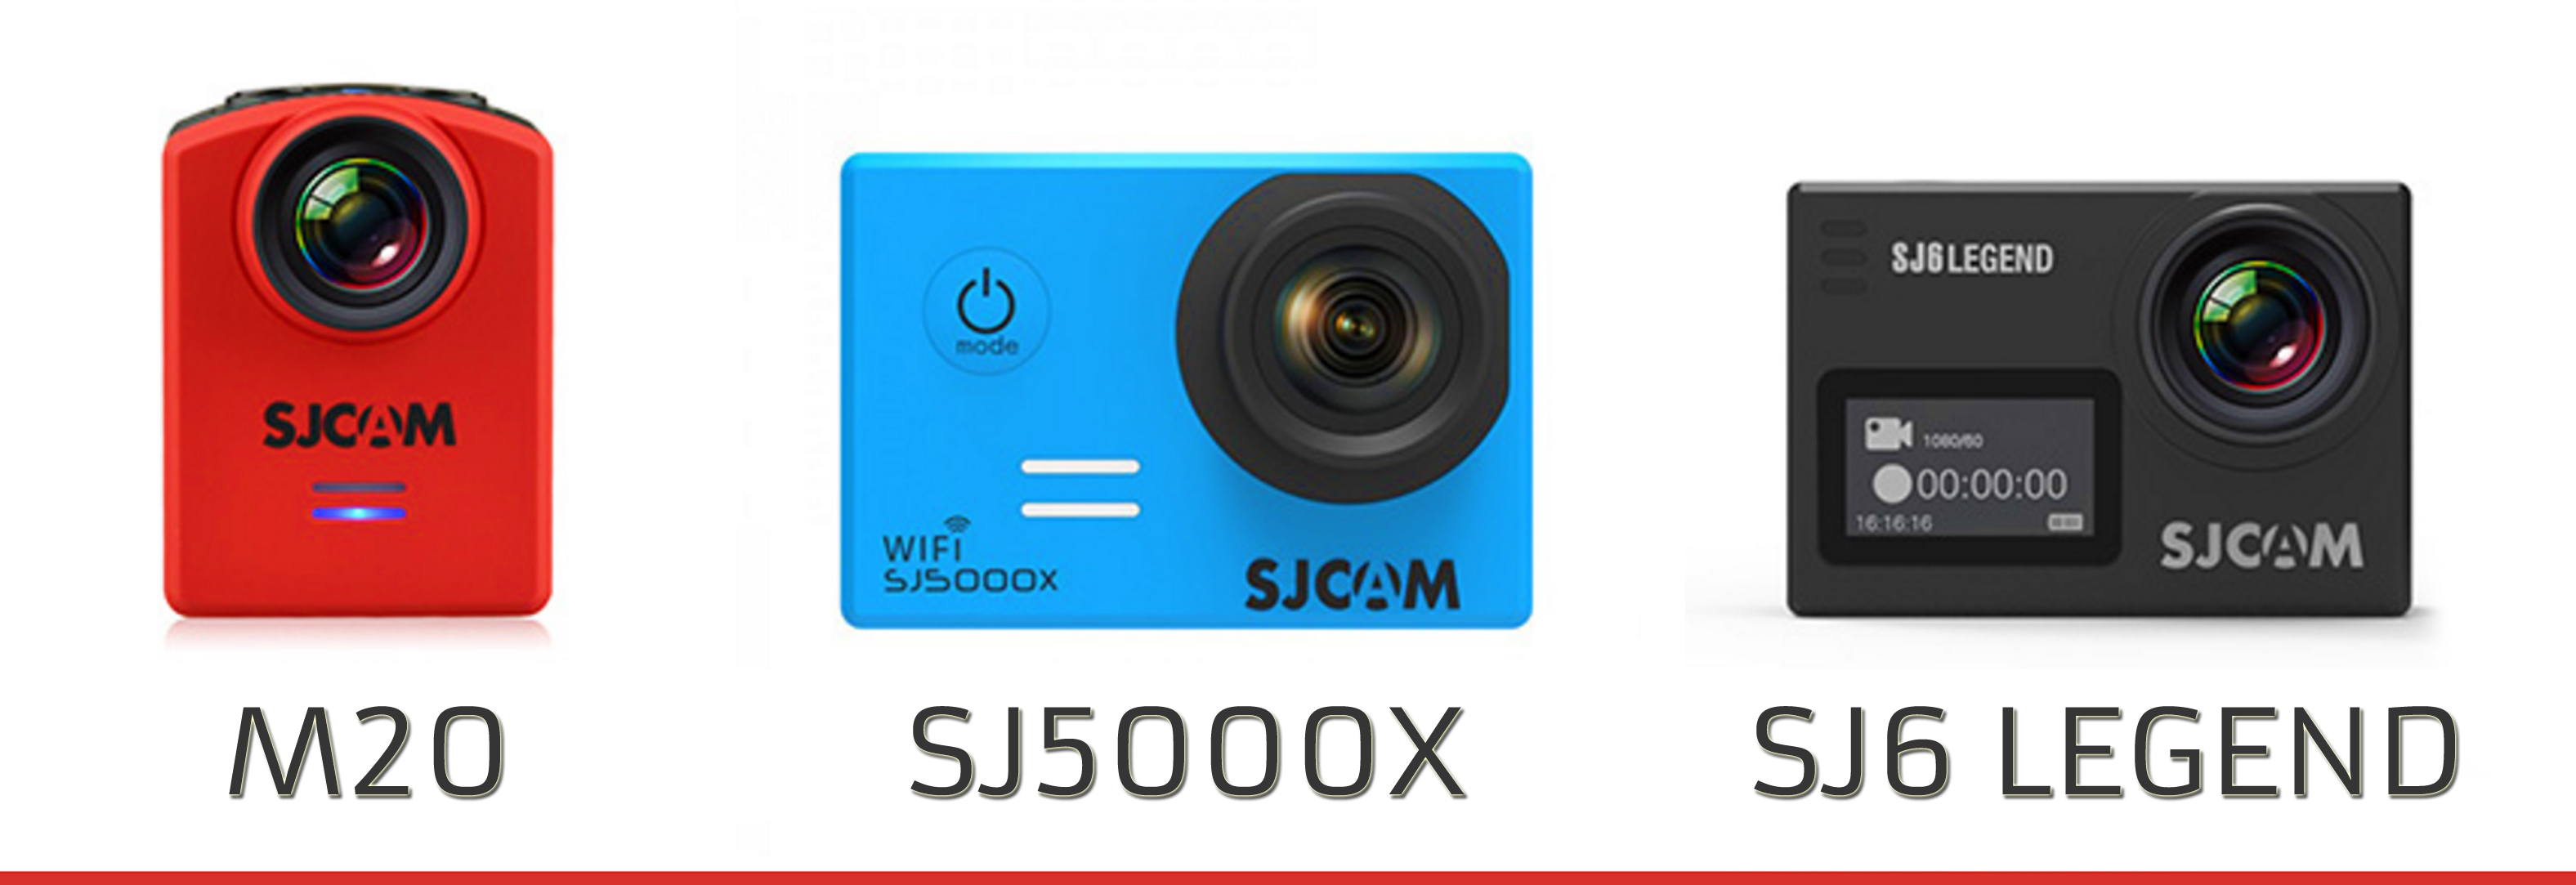 These 3 SJCAM cameras are 4K-capable!